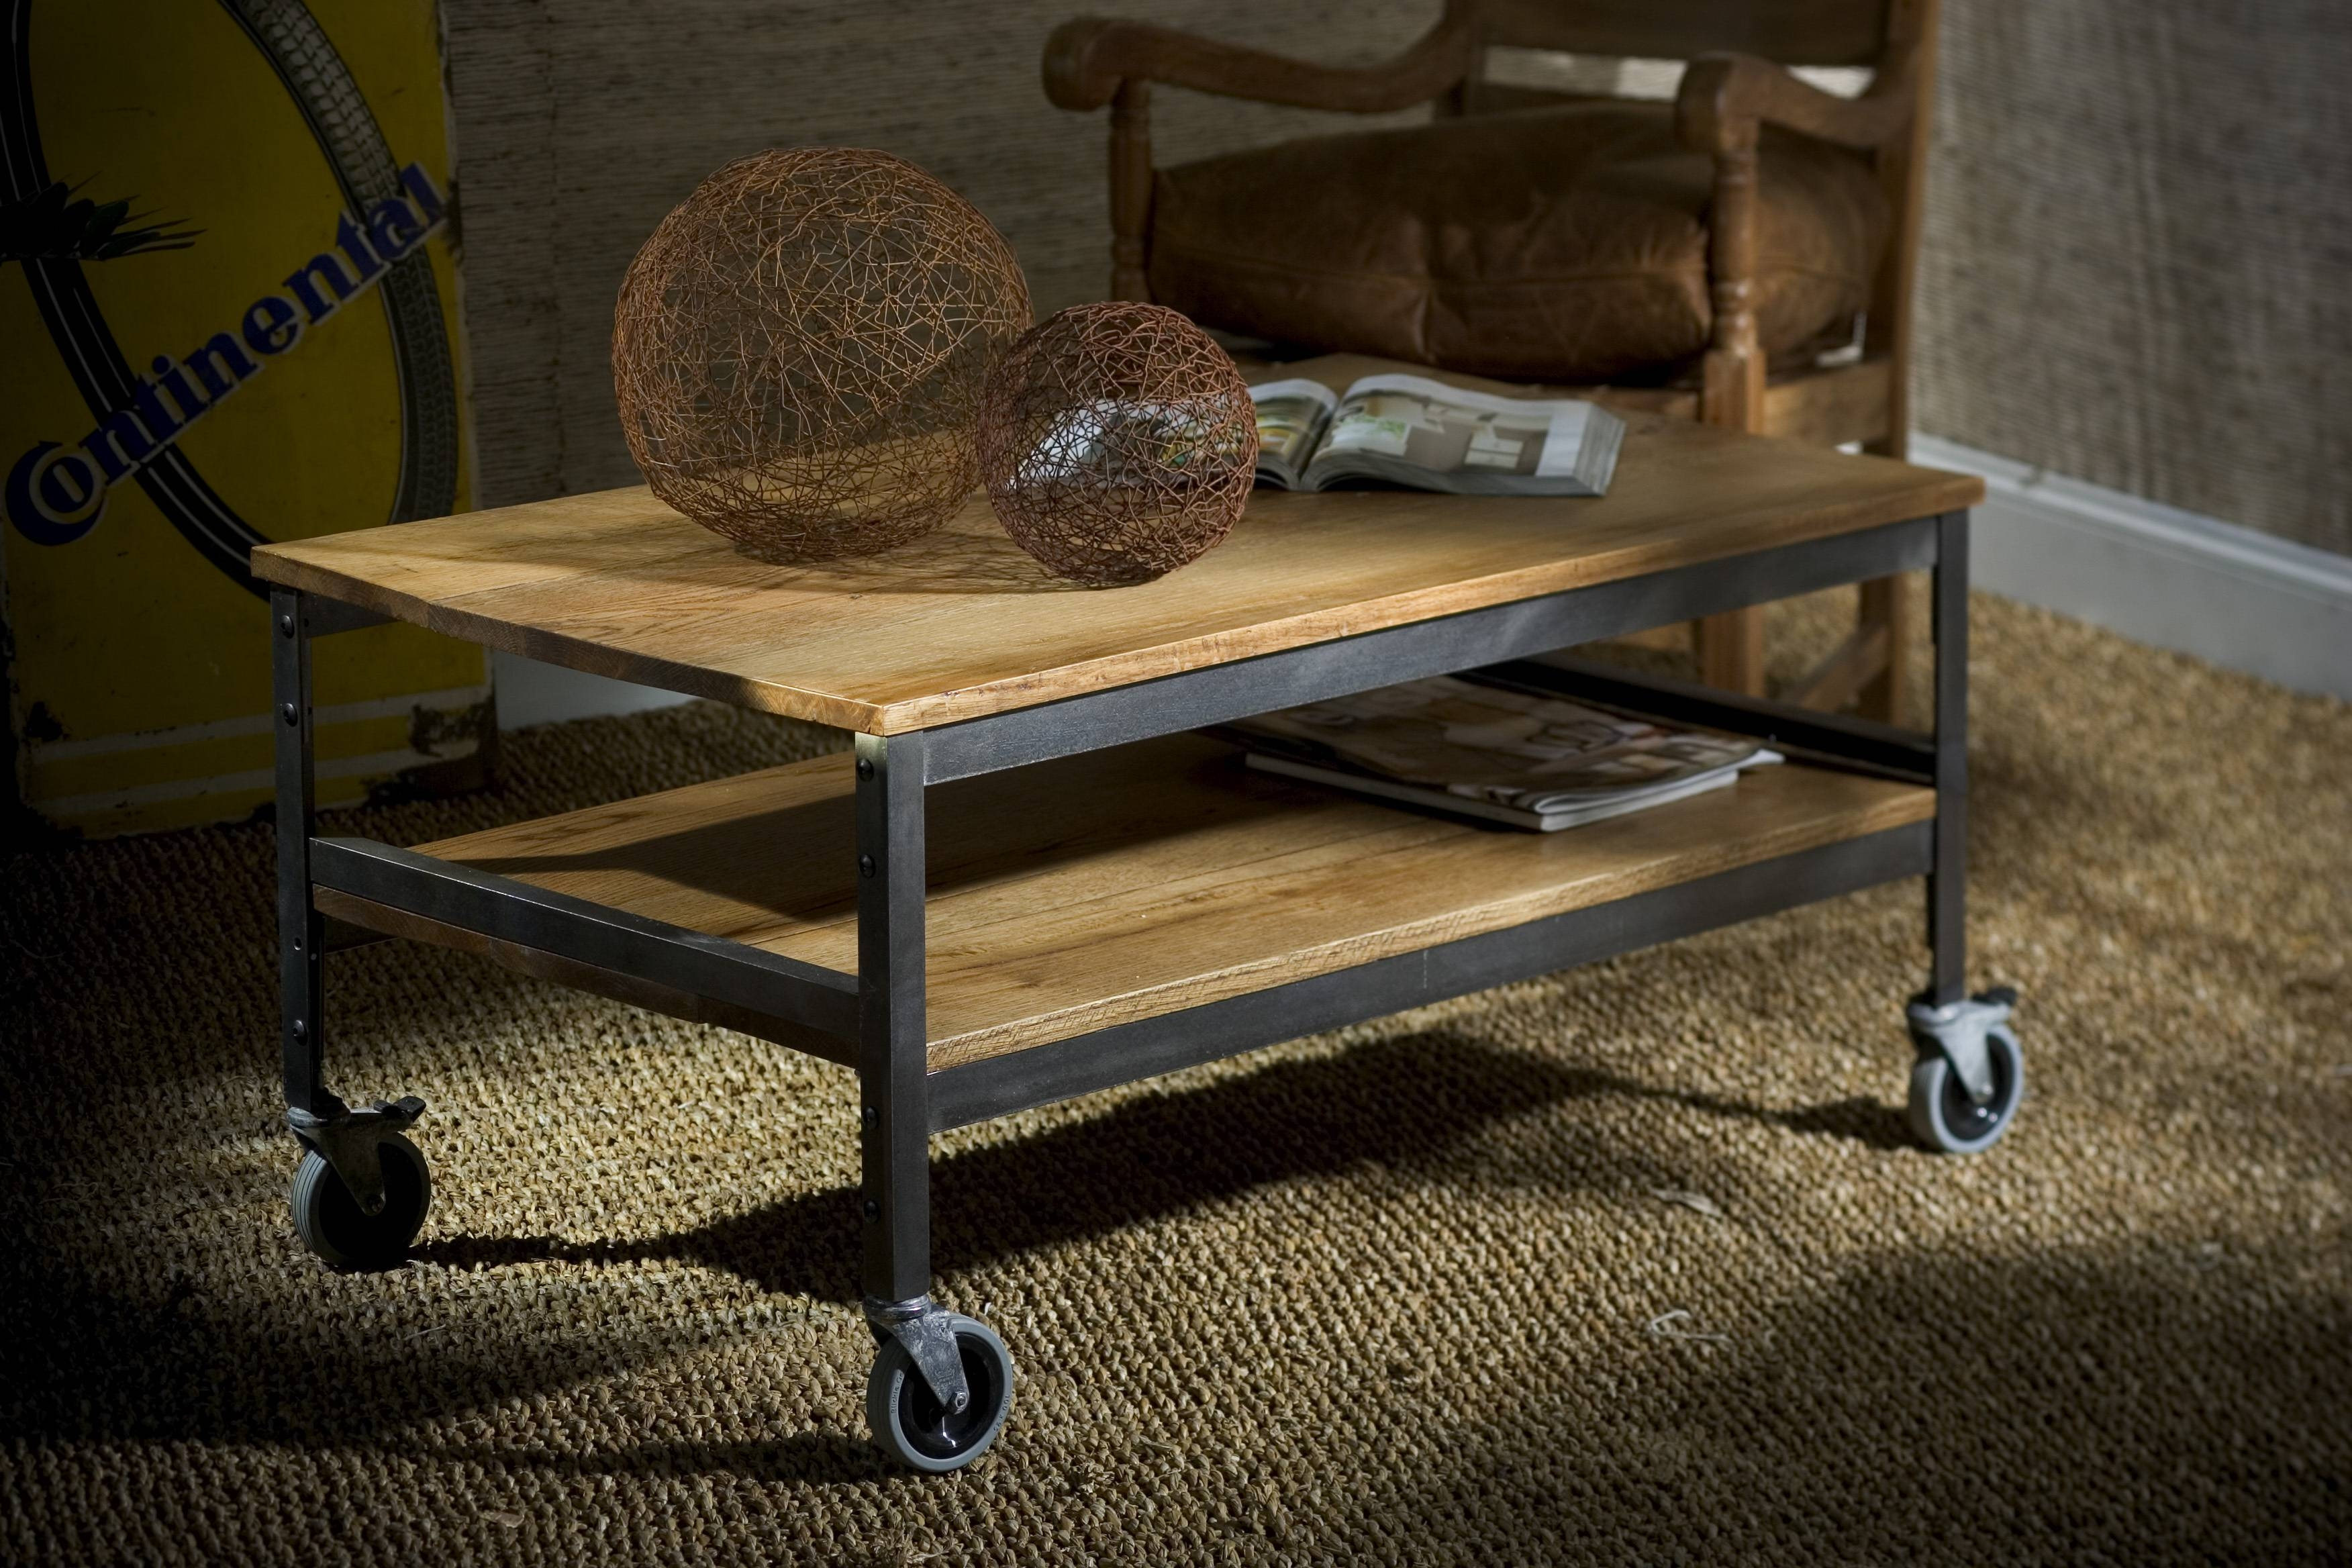 Wood And Metal Coffee Table On Wheels | Coffee Tables Decoration throughout Rustic Coffee Table With Wheels (Image 30 of 30)